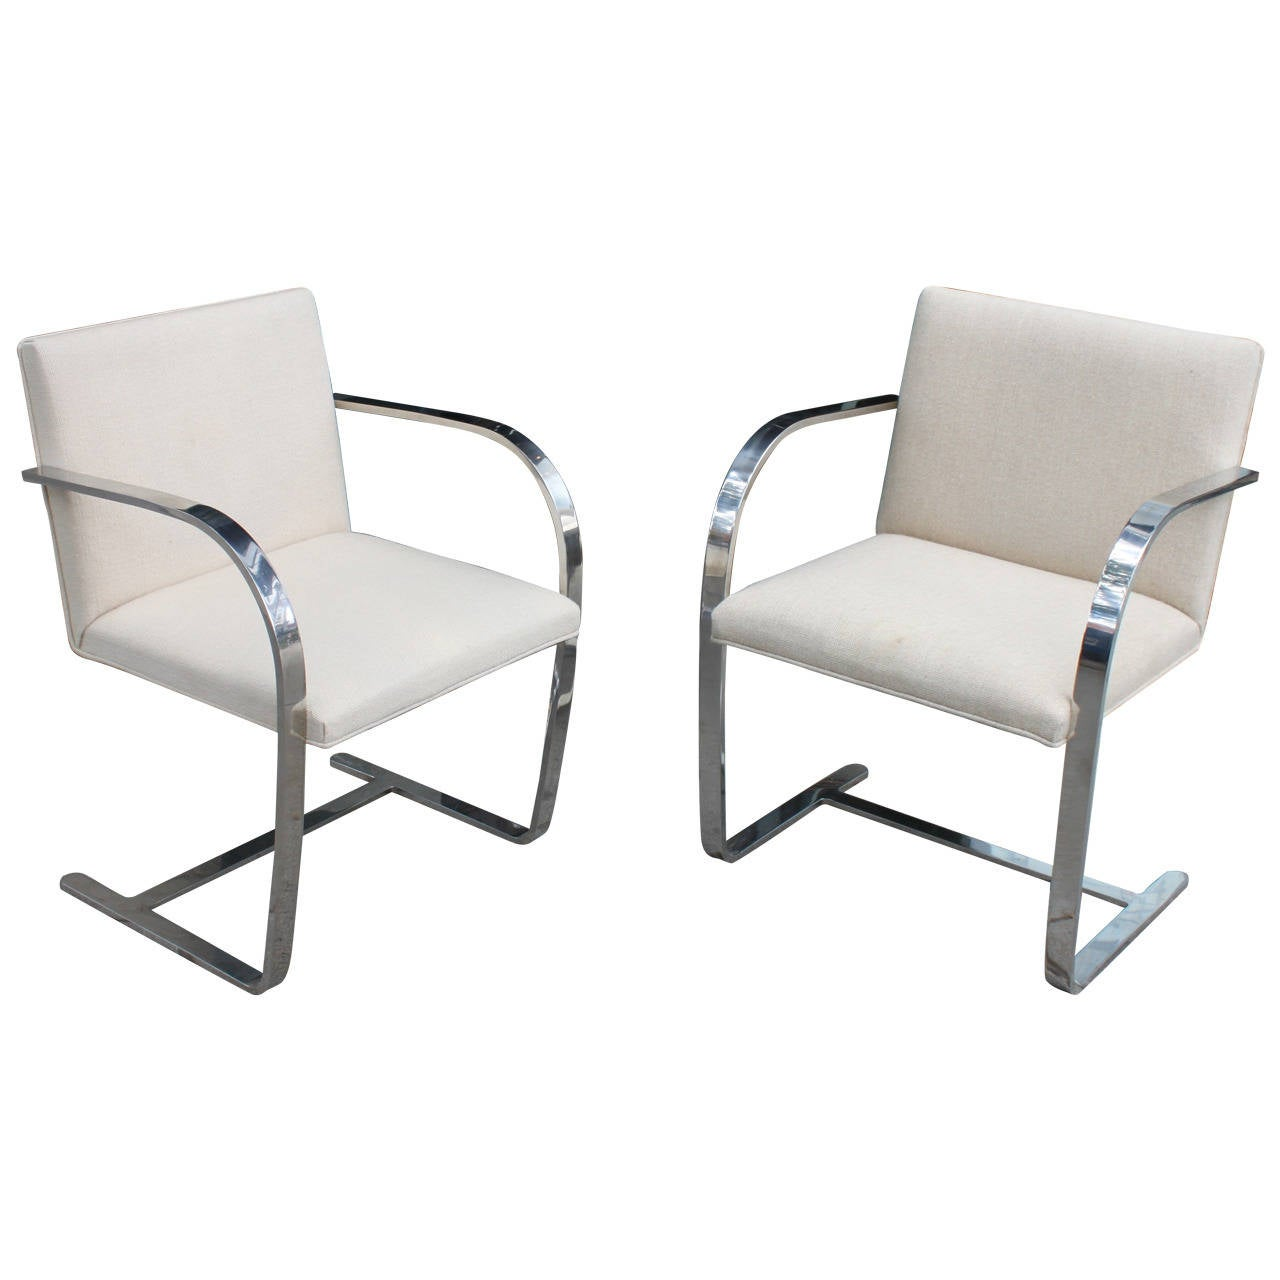 pair mies van der rohe brno chairs for knoll for sale at 1stdibs. Black Bedroom Furniture Sets. Home Design Ideas